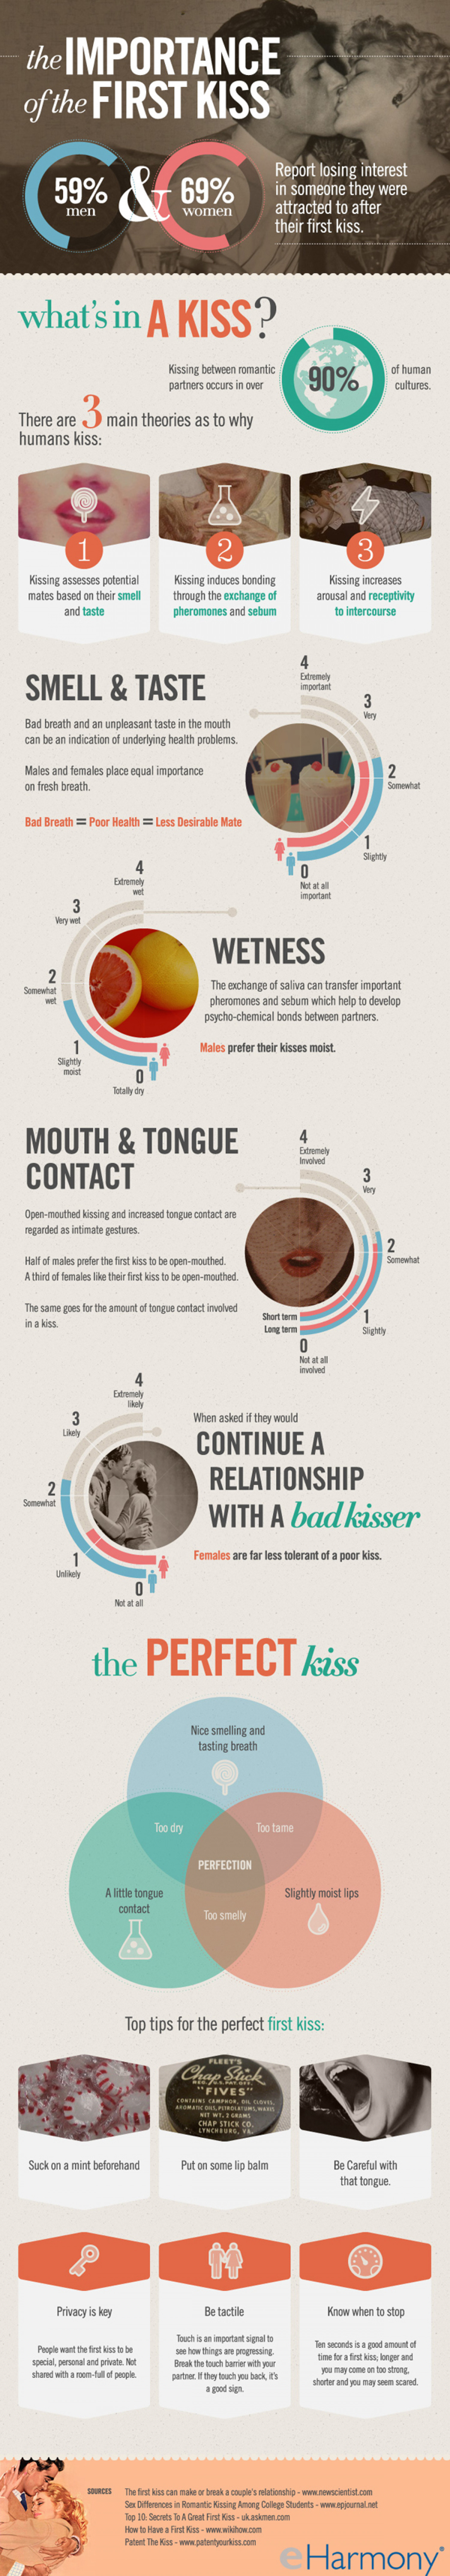 The Importance of the First Kiss Infographic